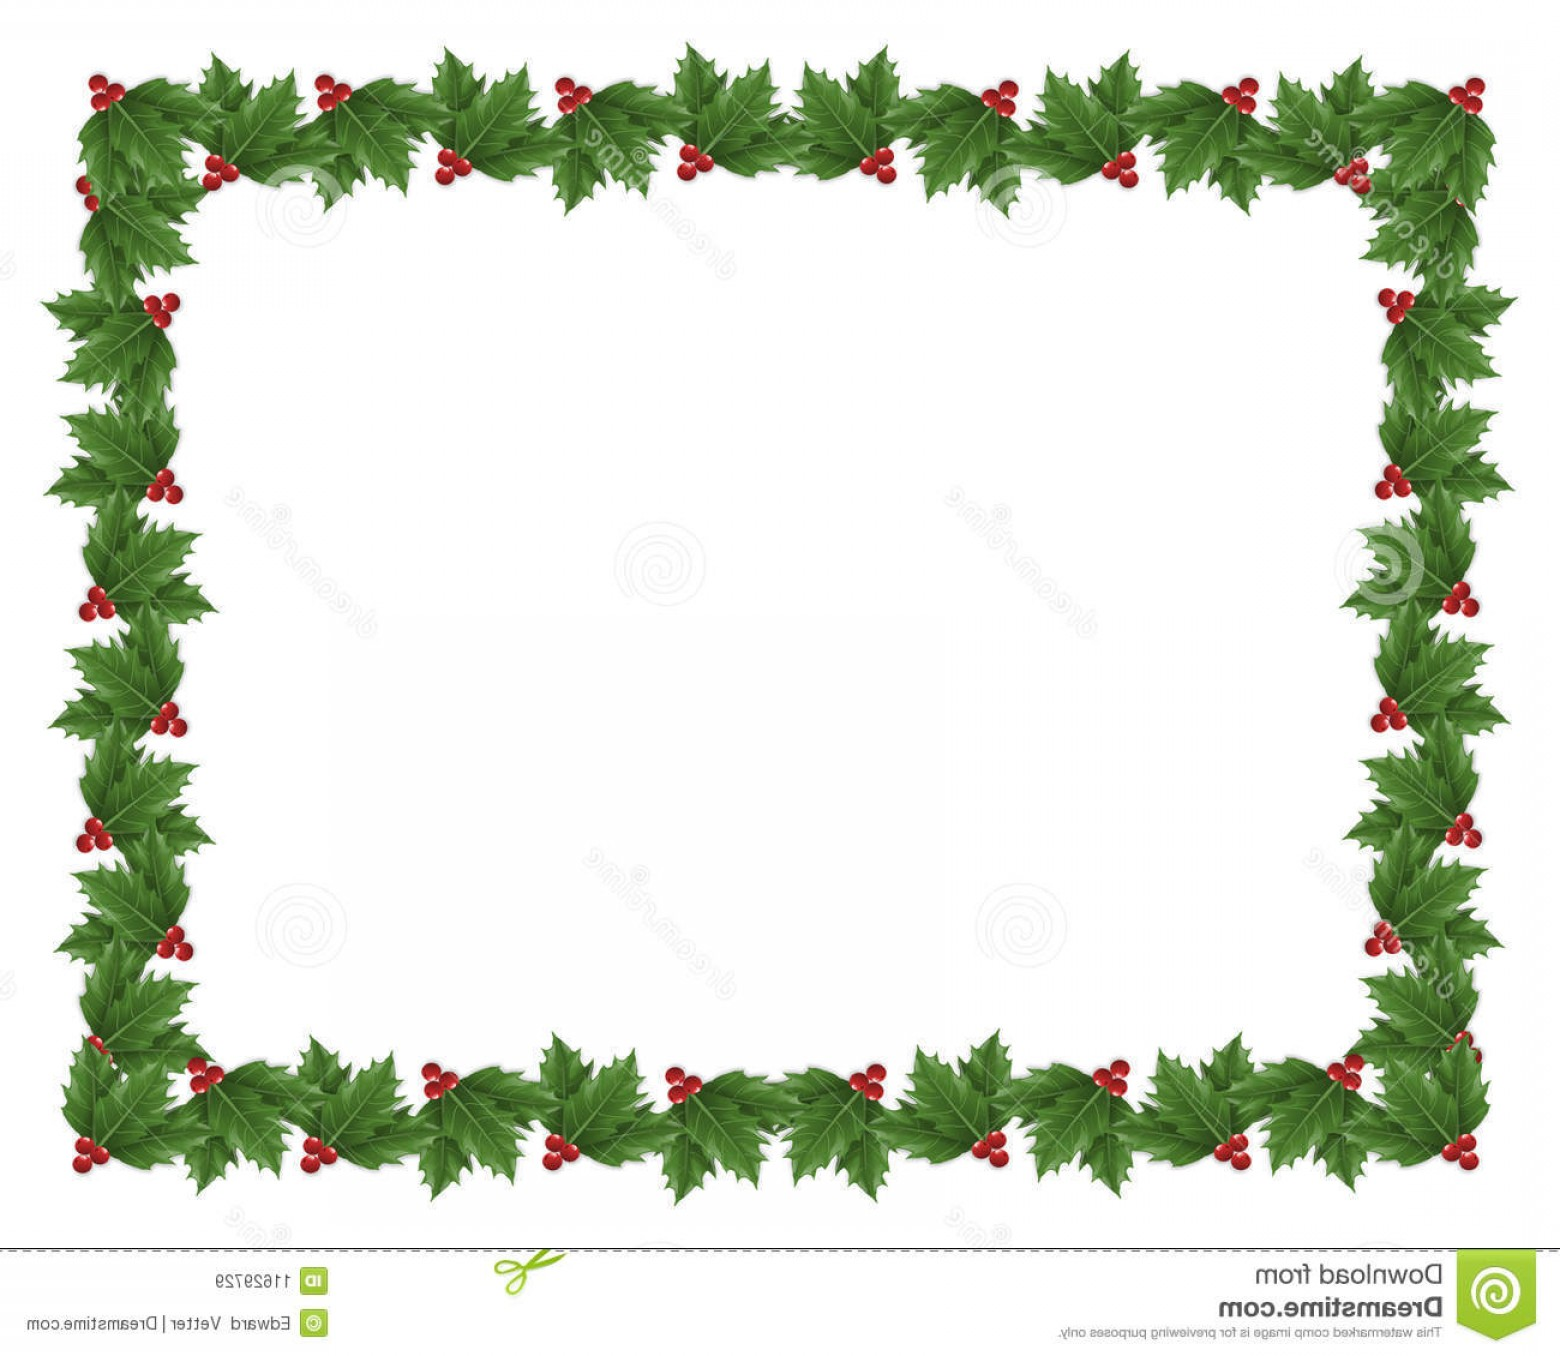 Royalty free stock images. Garland clipart jpeg